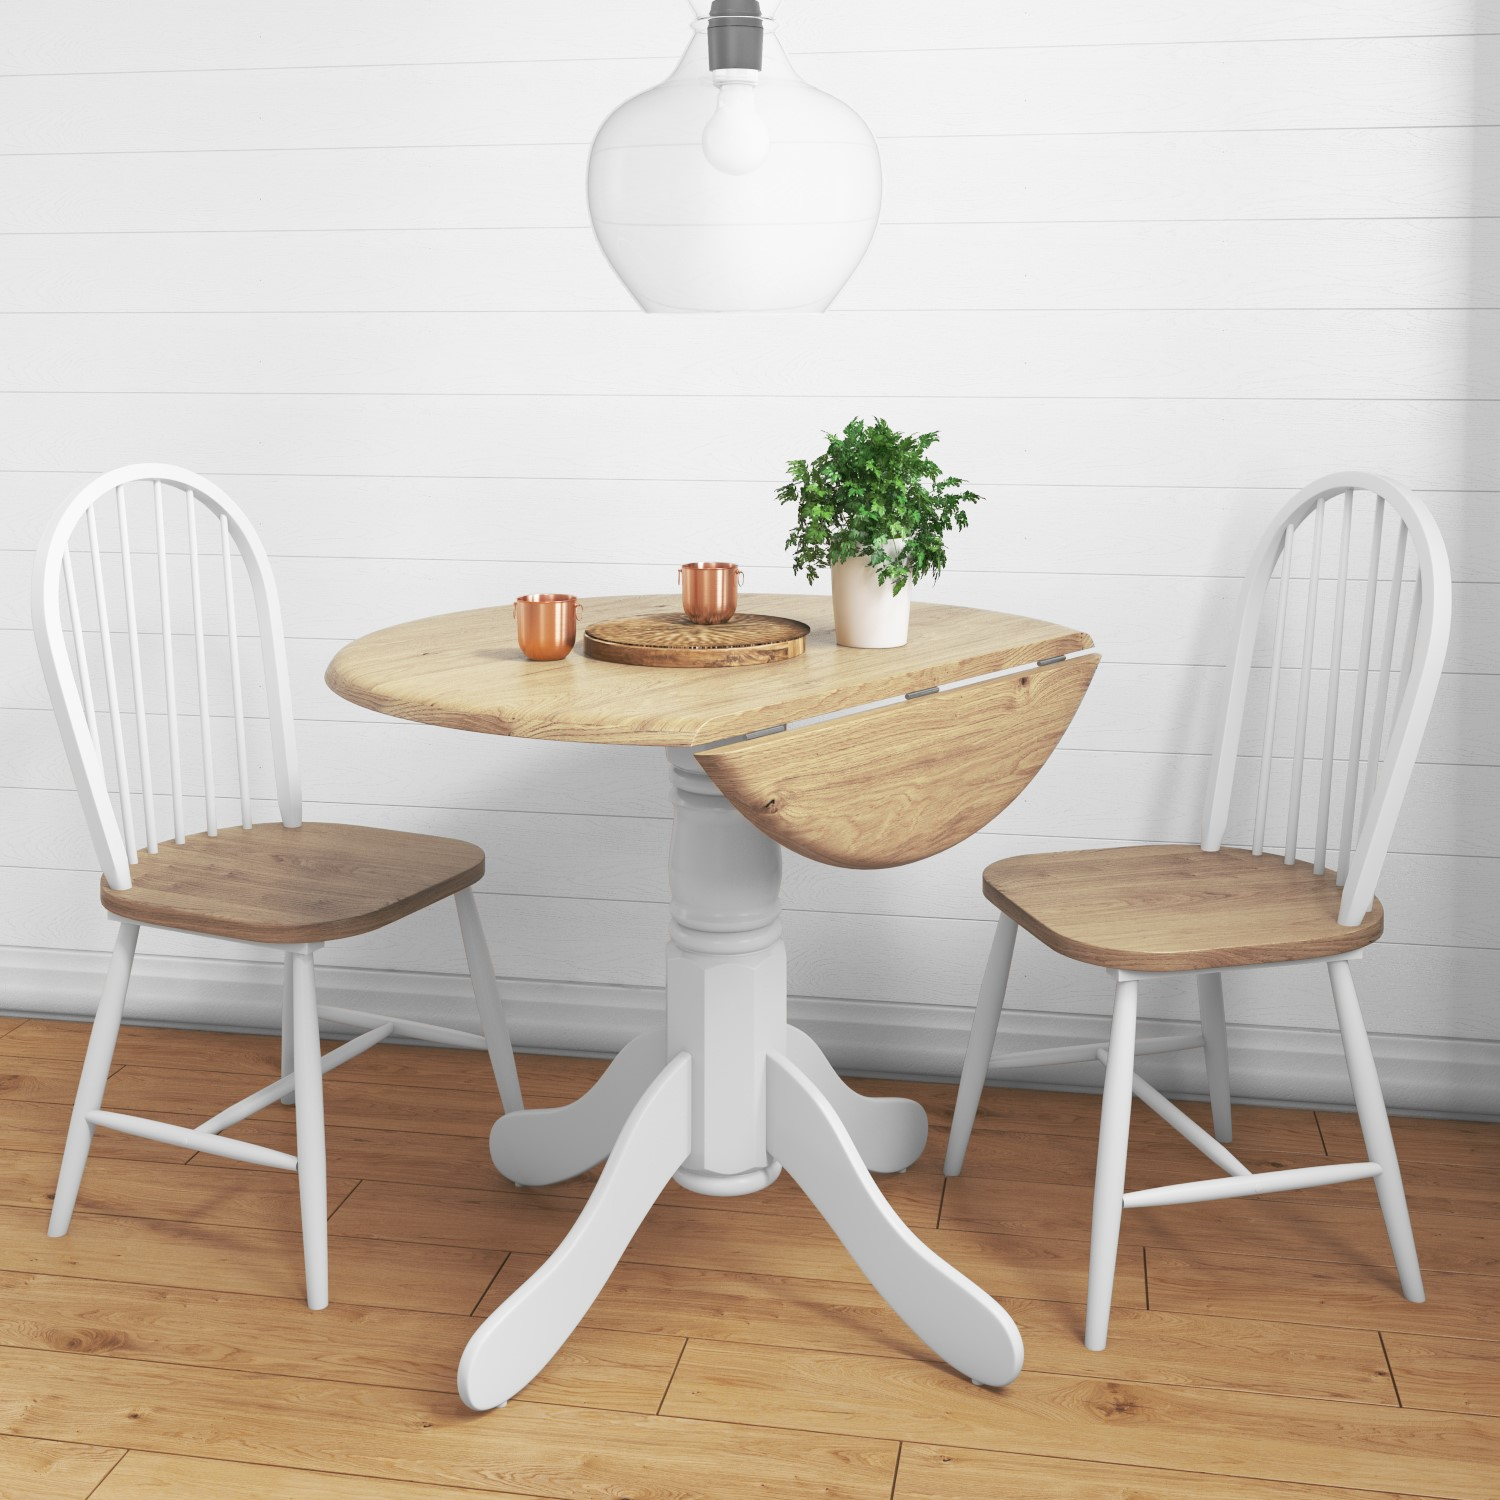 Fantastic Small Round Drop Leaf Table With 2 Chairs In Oak White Rhode Island Cjindustries Chair Design For Home Cjindustriesco